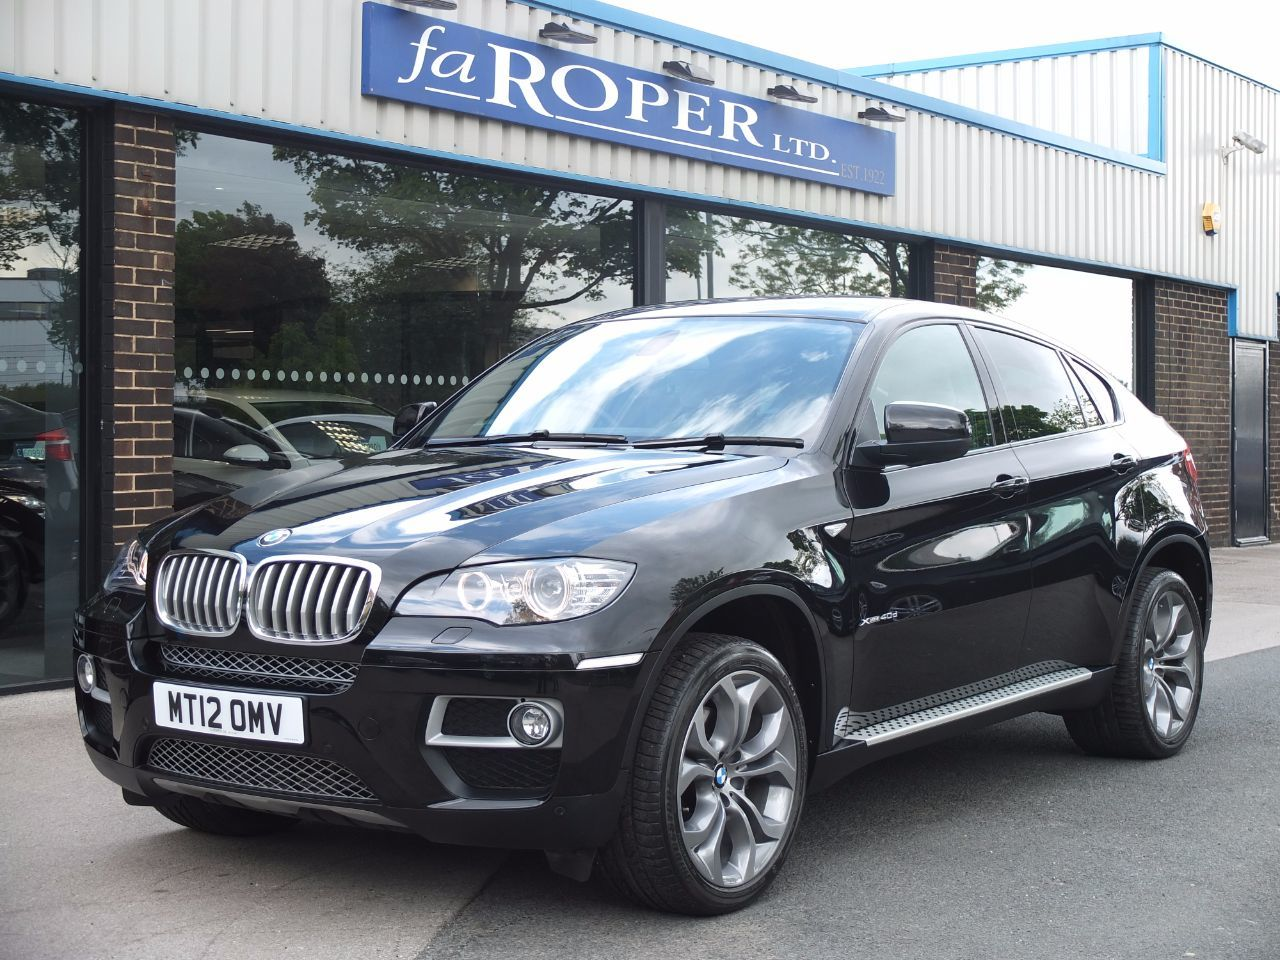 BMW X6 3.0 xDrive40d Dynamic Auto, Media Pack +++Spec Coupe Diesel Black Sapphire MetallicBMW X6 3.0 xDrive40d Dynamic Auto, Media Pack +++Spec Coupe Diesel Black Sapphire Metallic at fa Roper Ltd Bradford